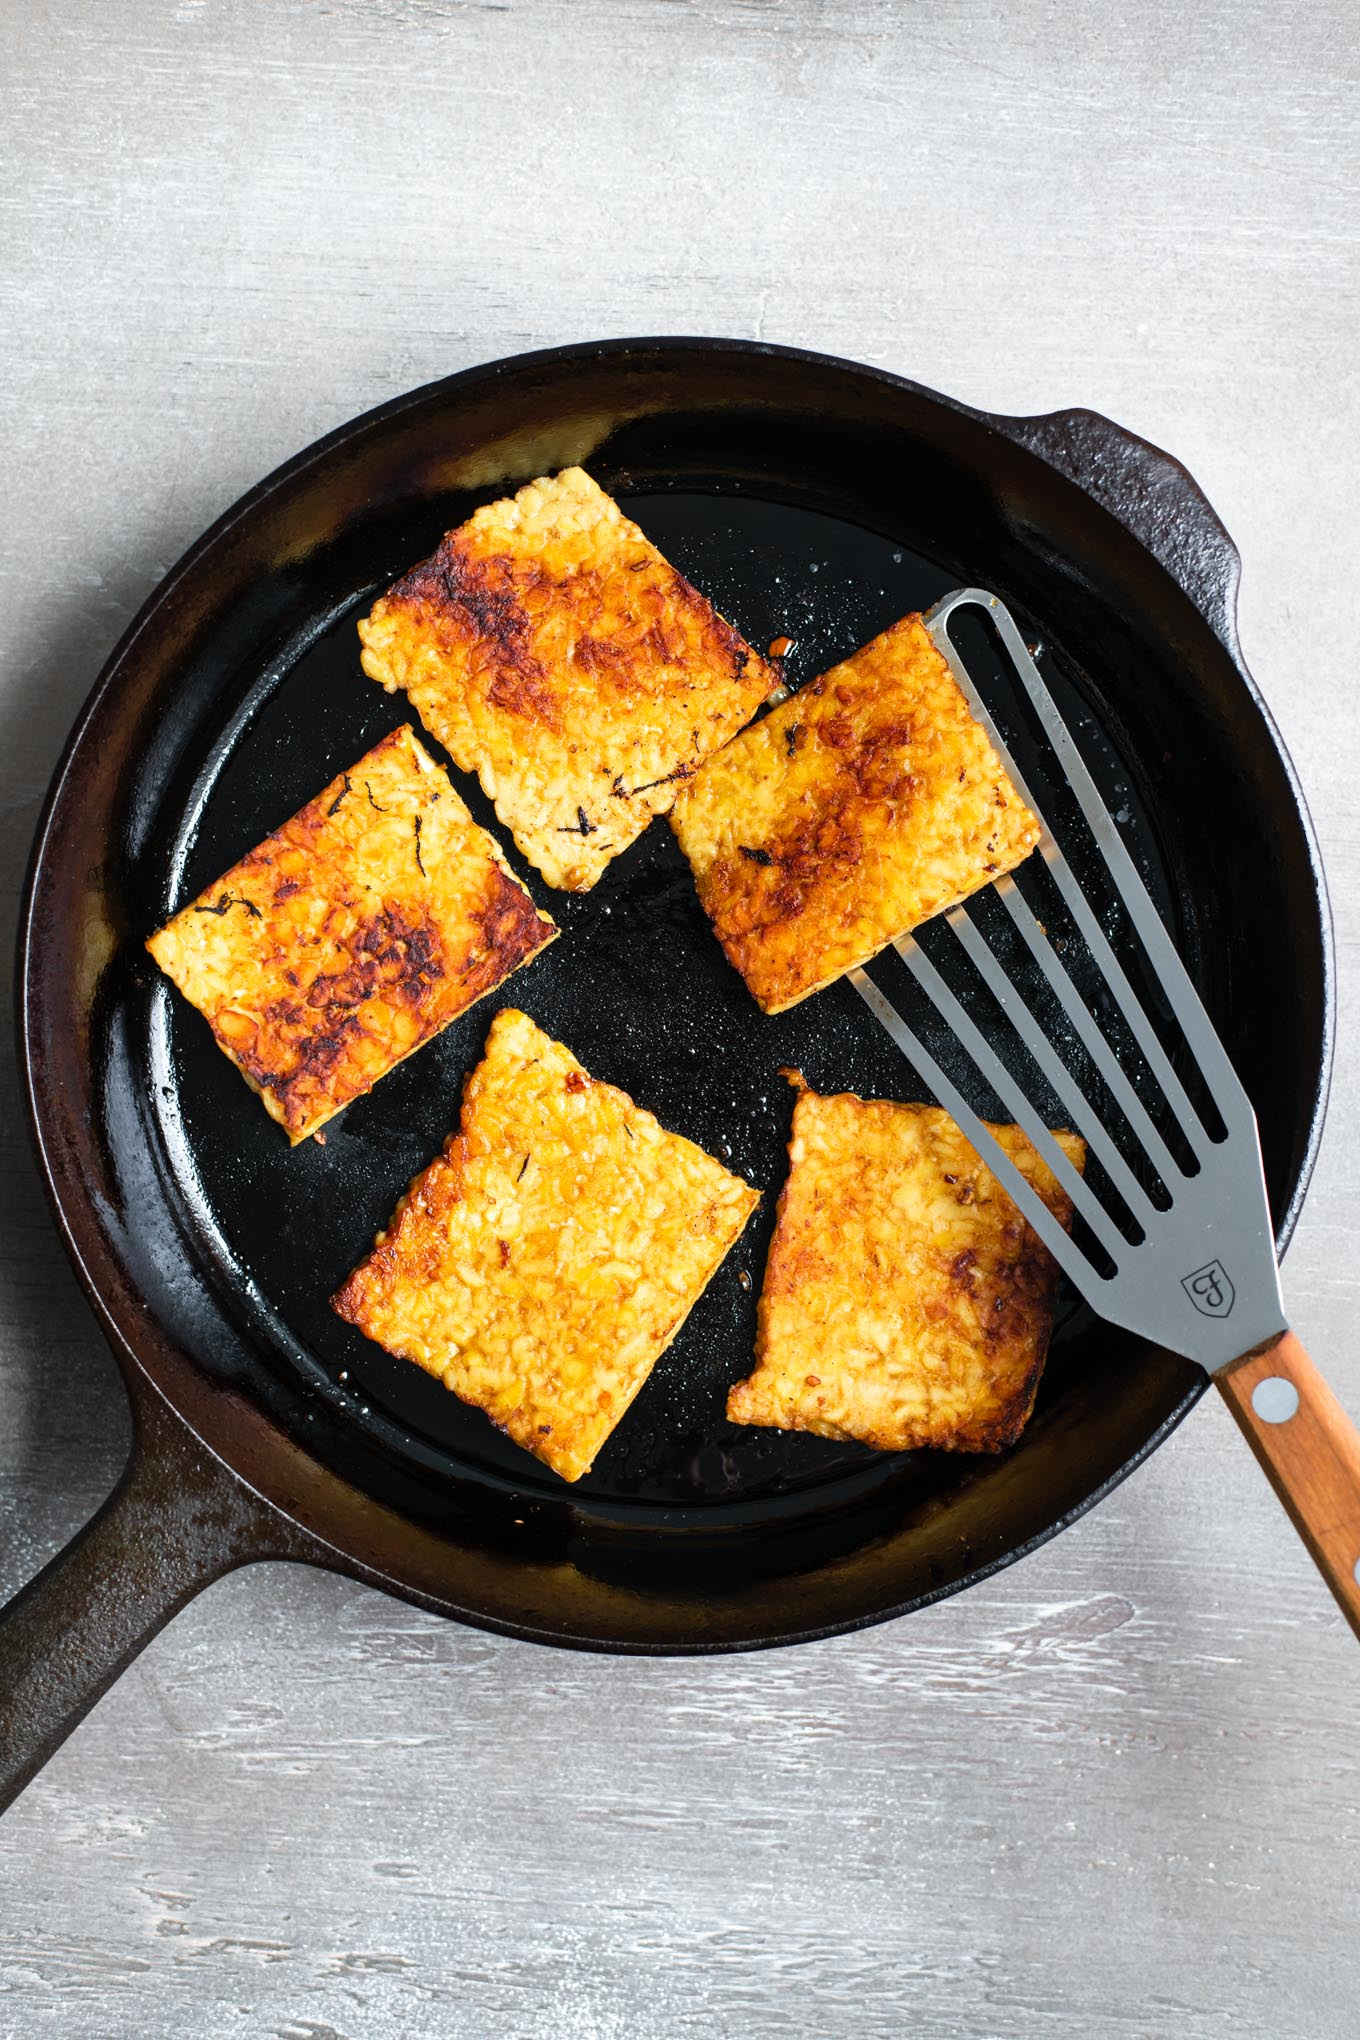 marinated corned tempeh in the skillet and browned